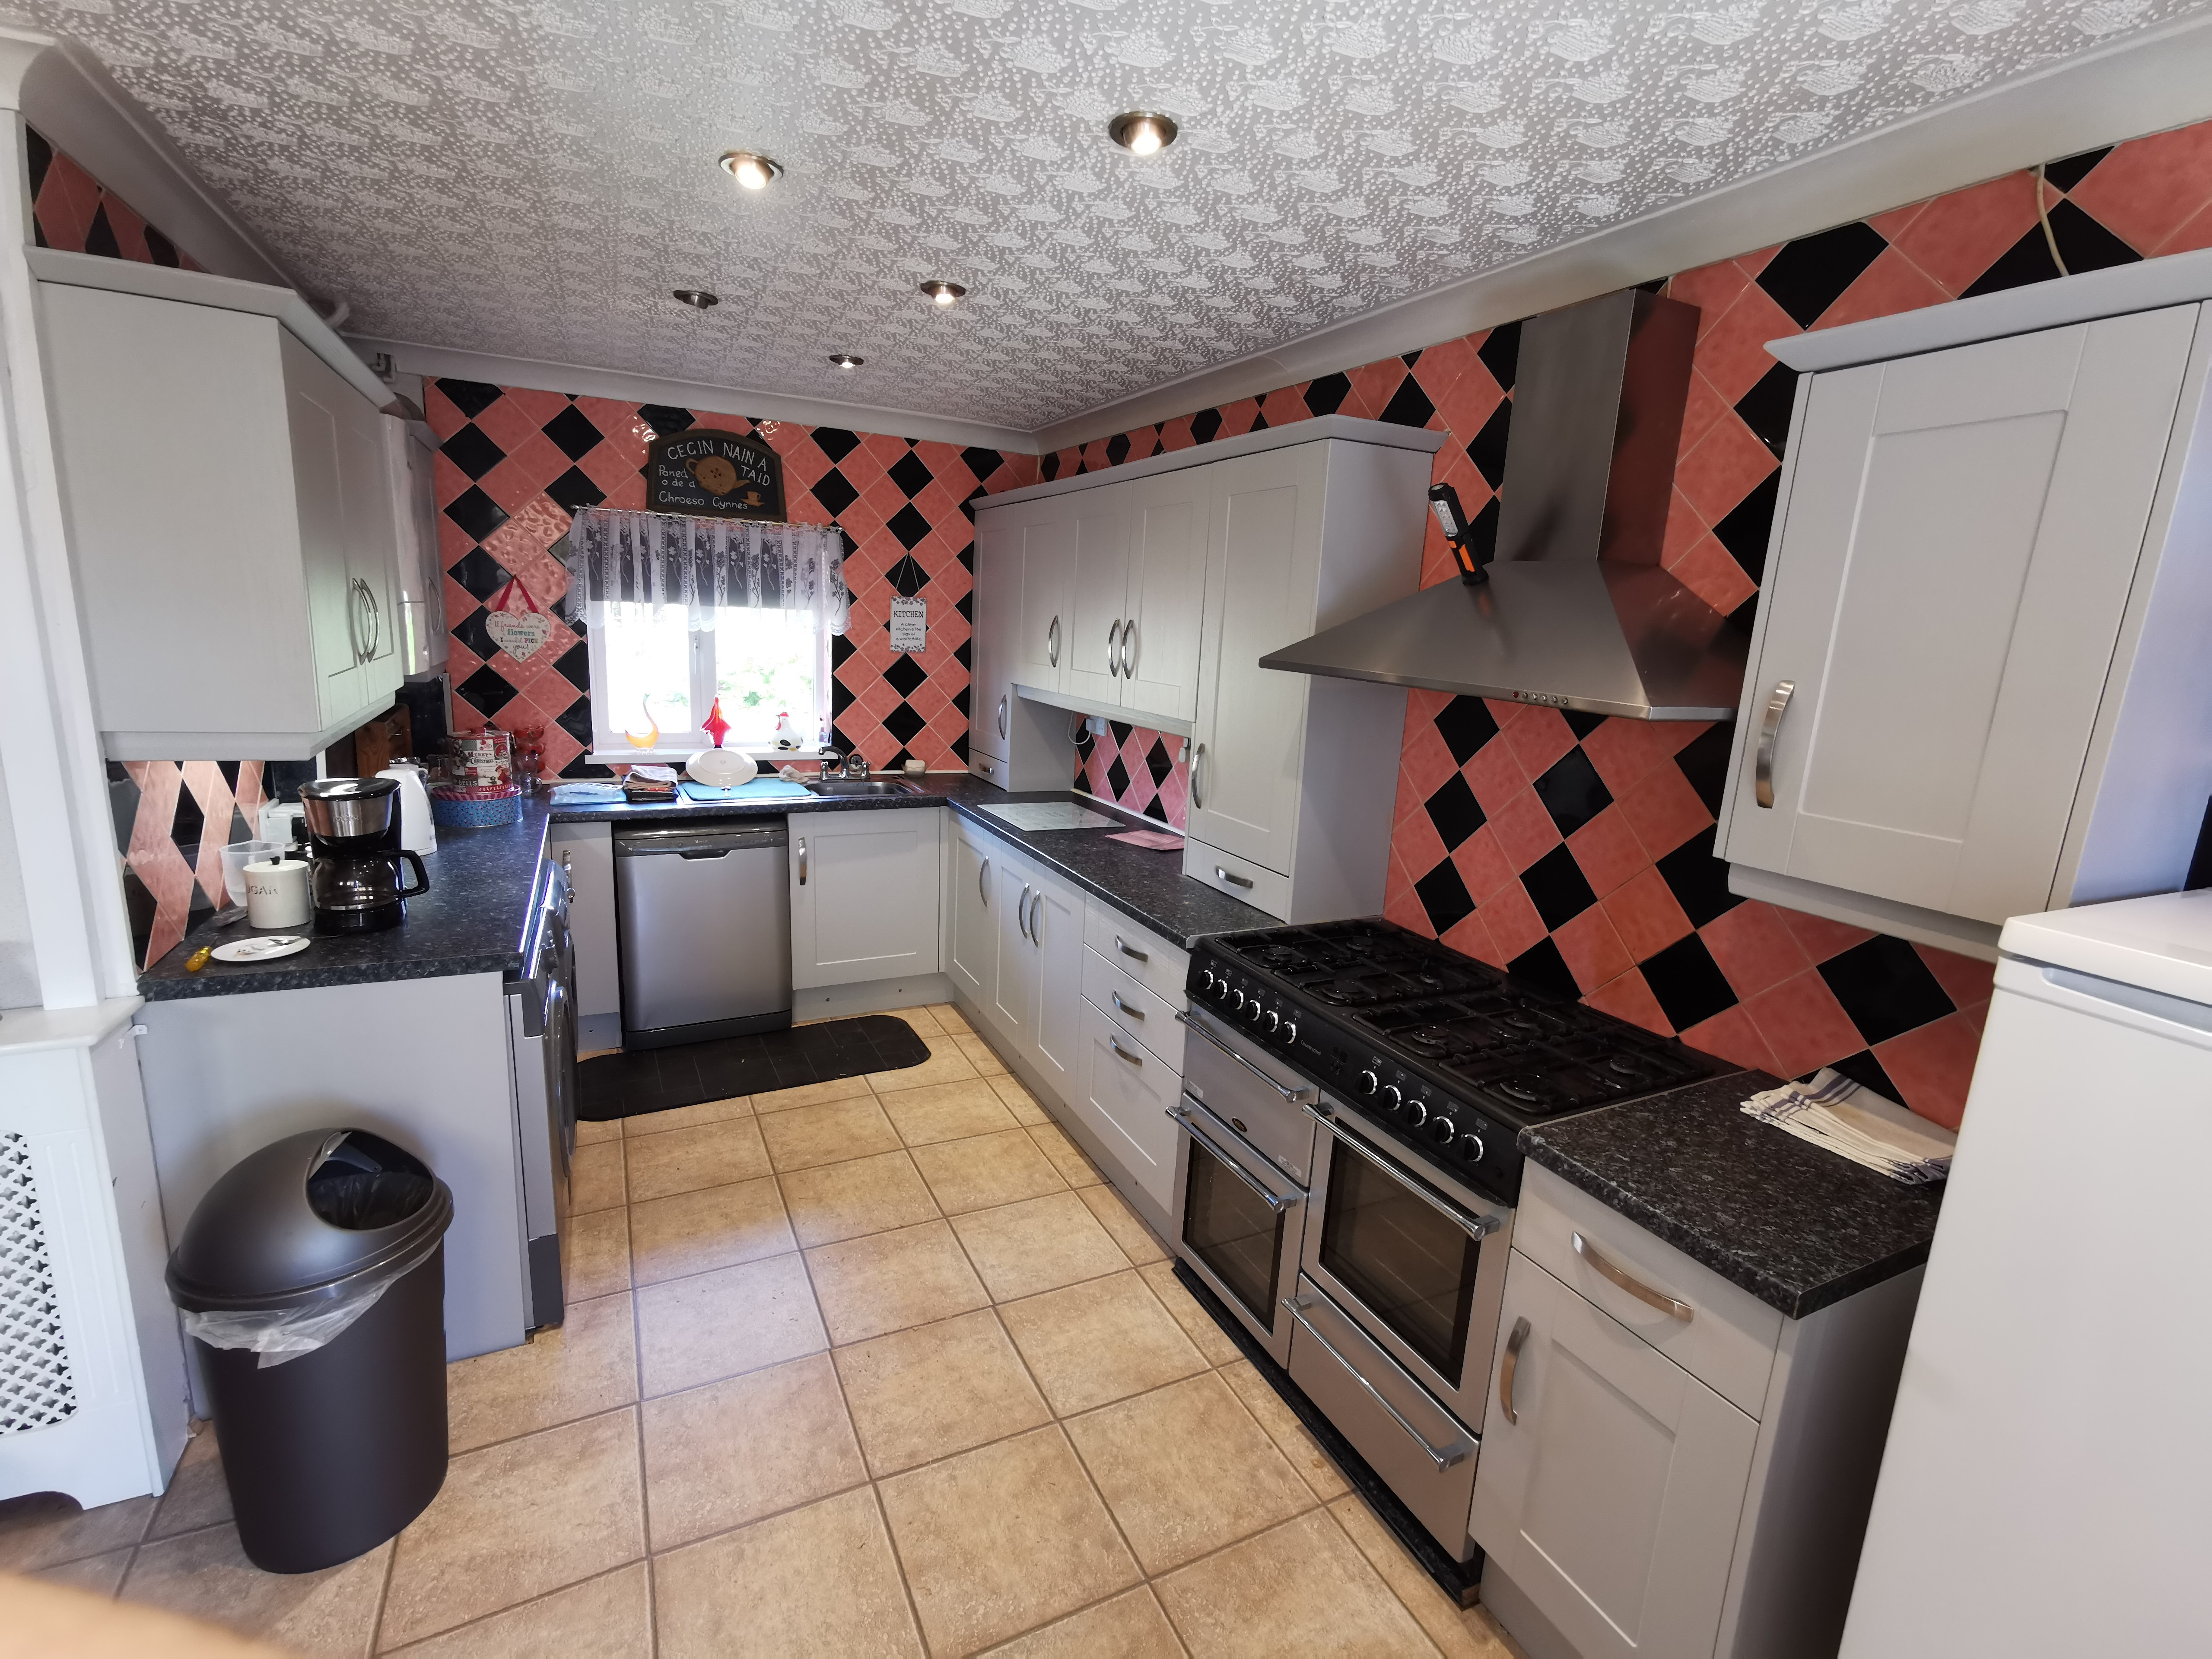 Kitchen Company in Mold